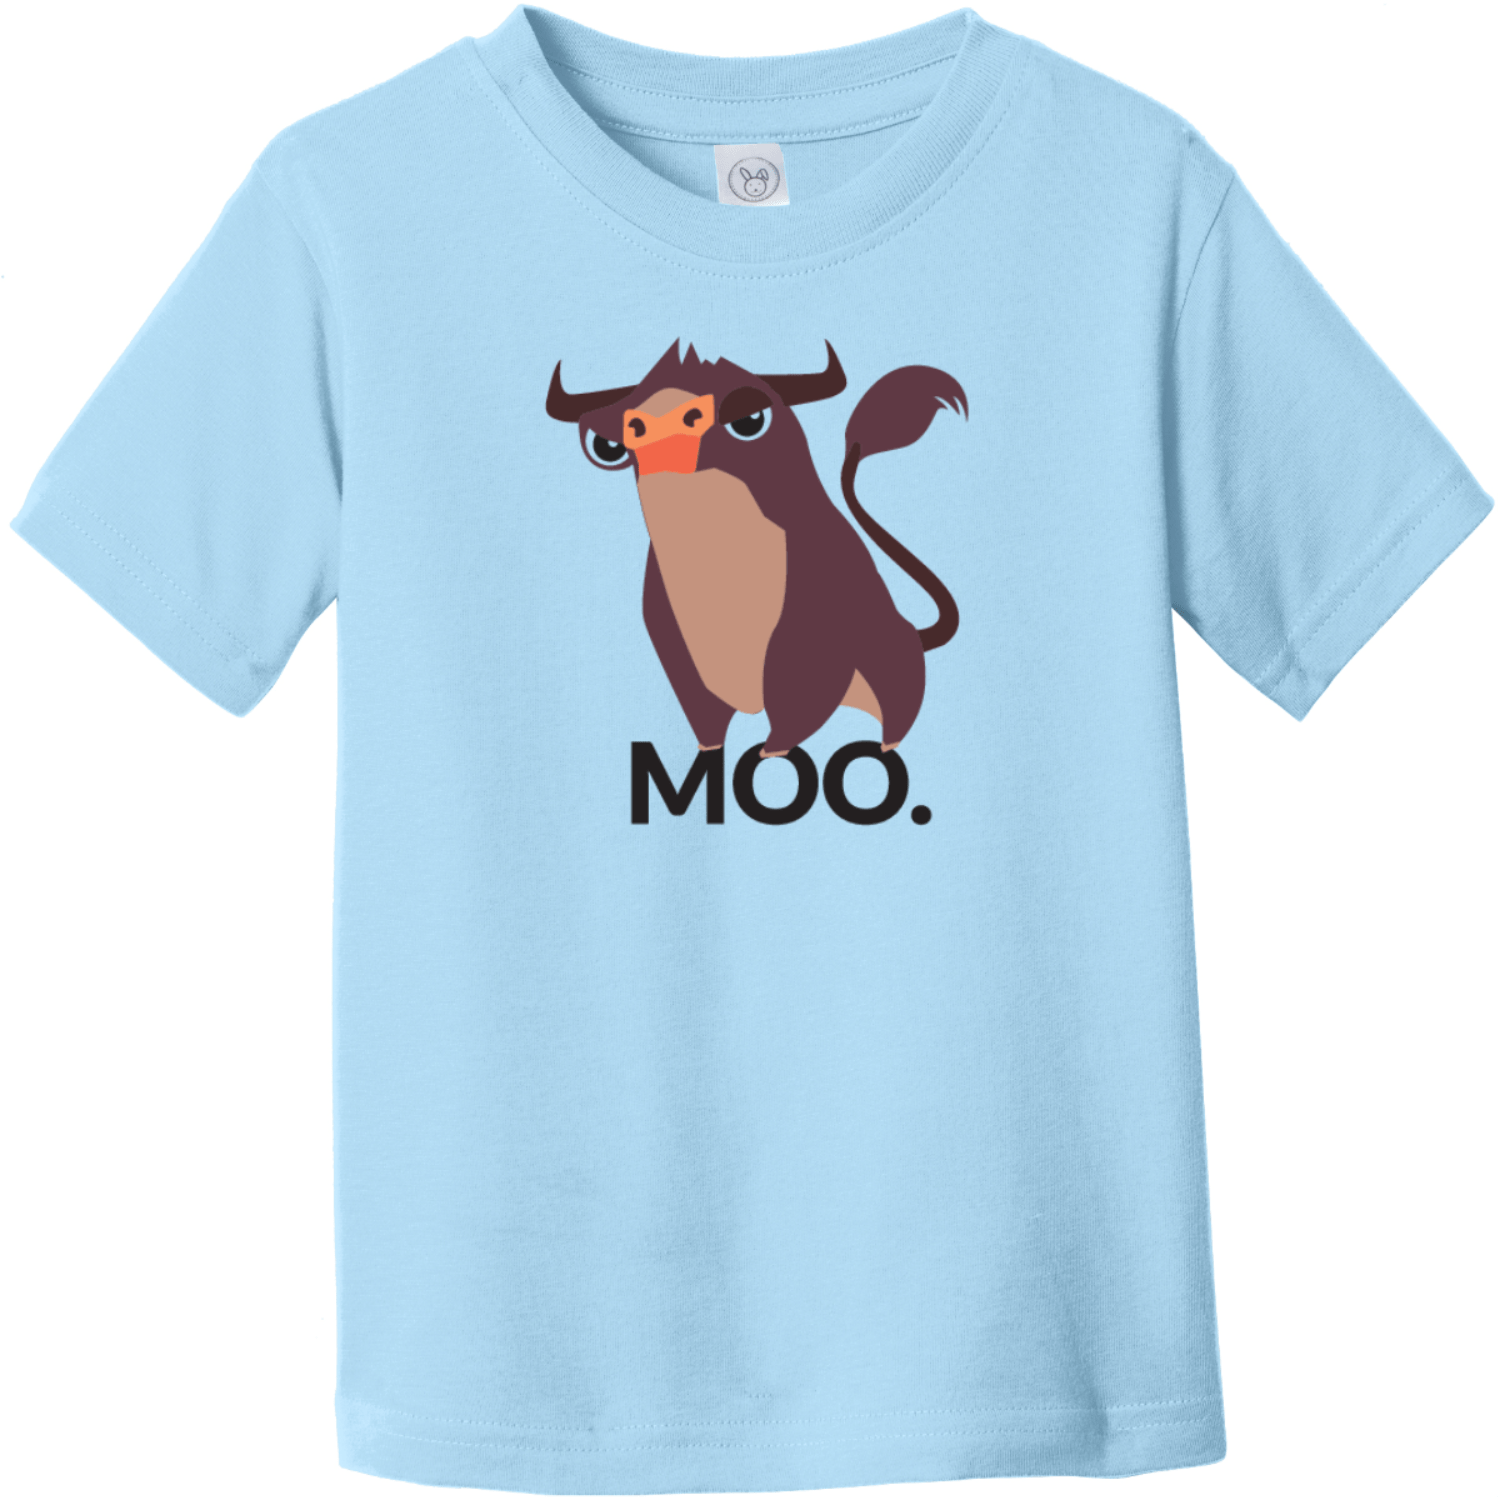 Moo Bull Toddler T-Shirt Light Blue Rabbit Skins Toddler Fine Jersey Tee RS3321